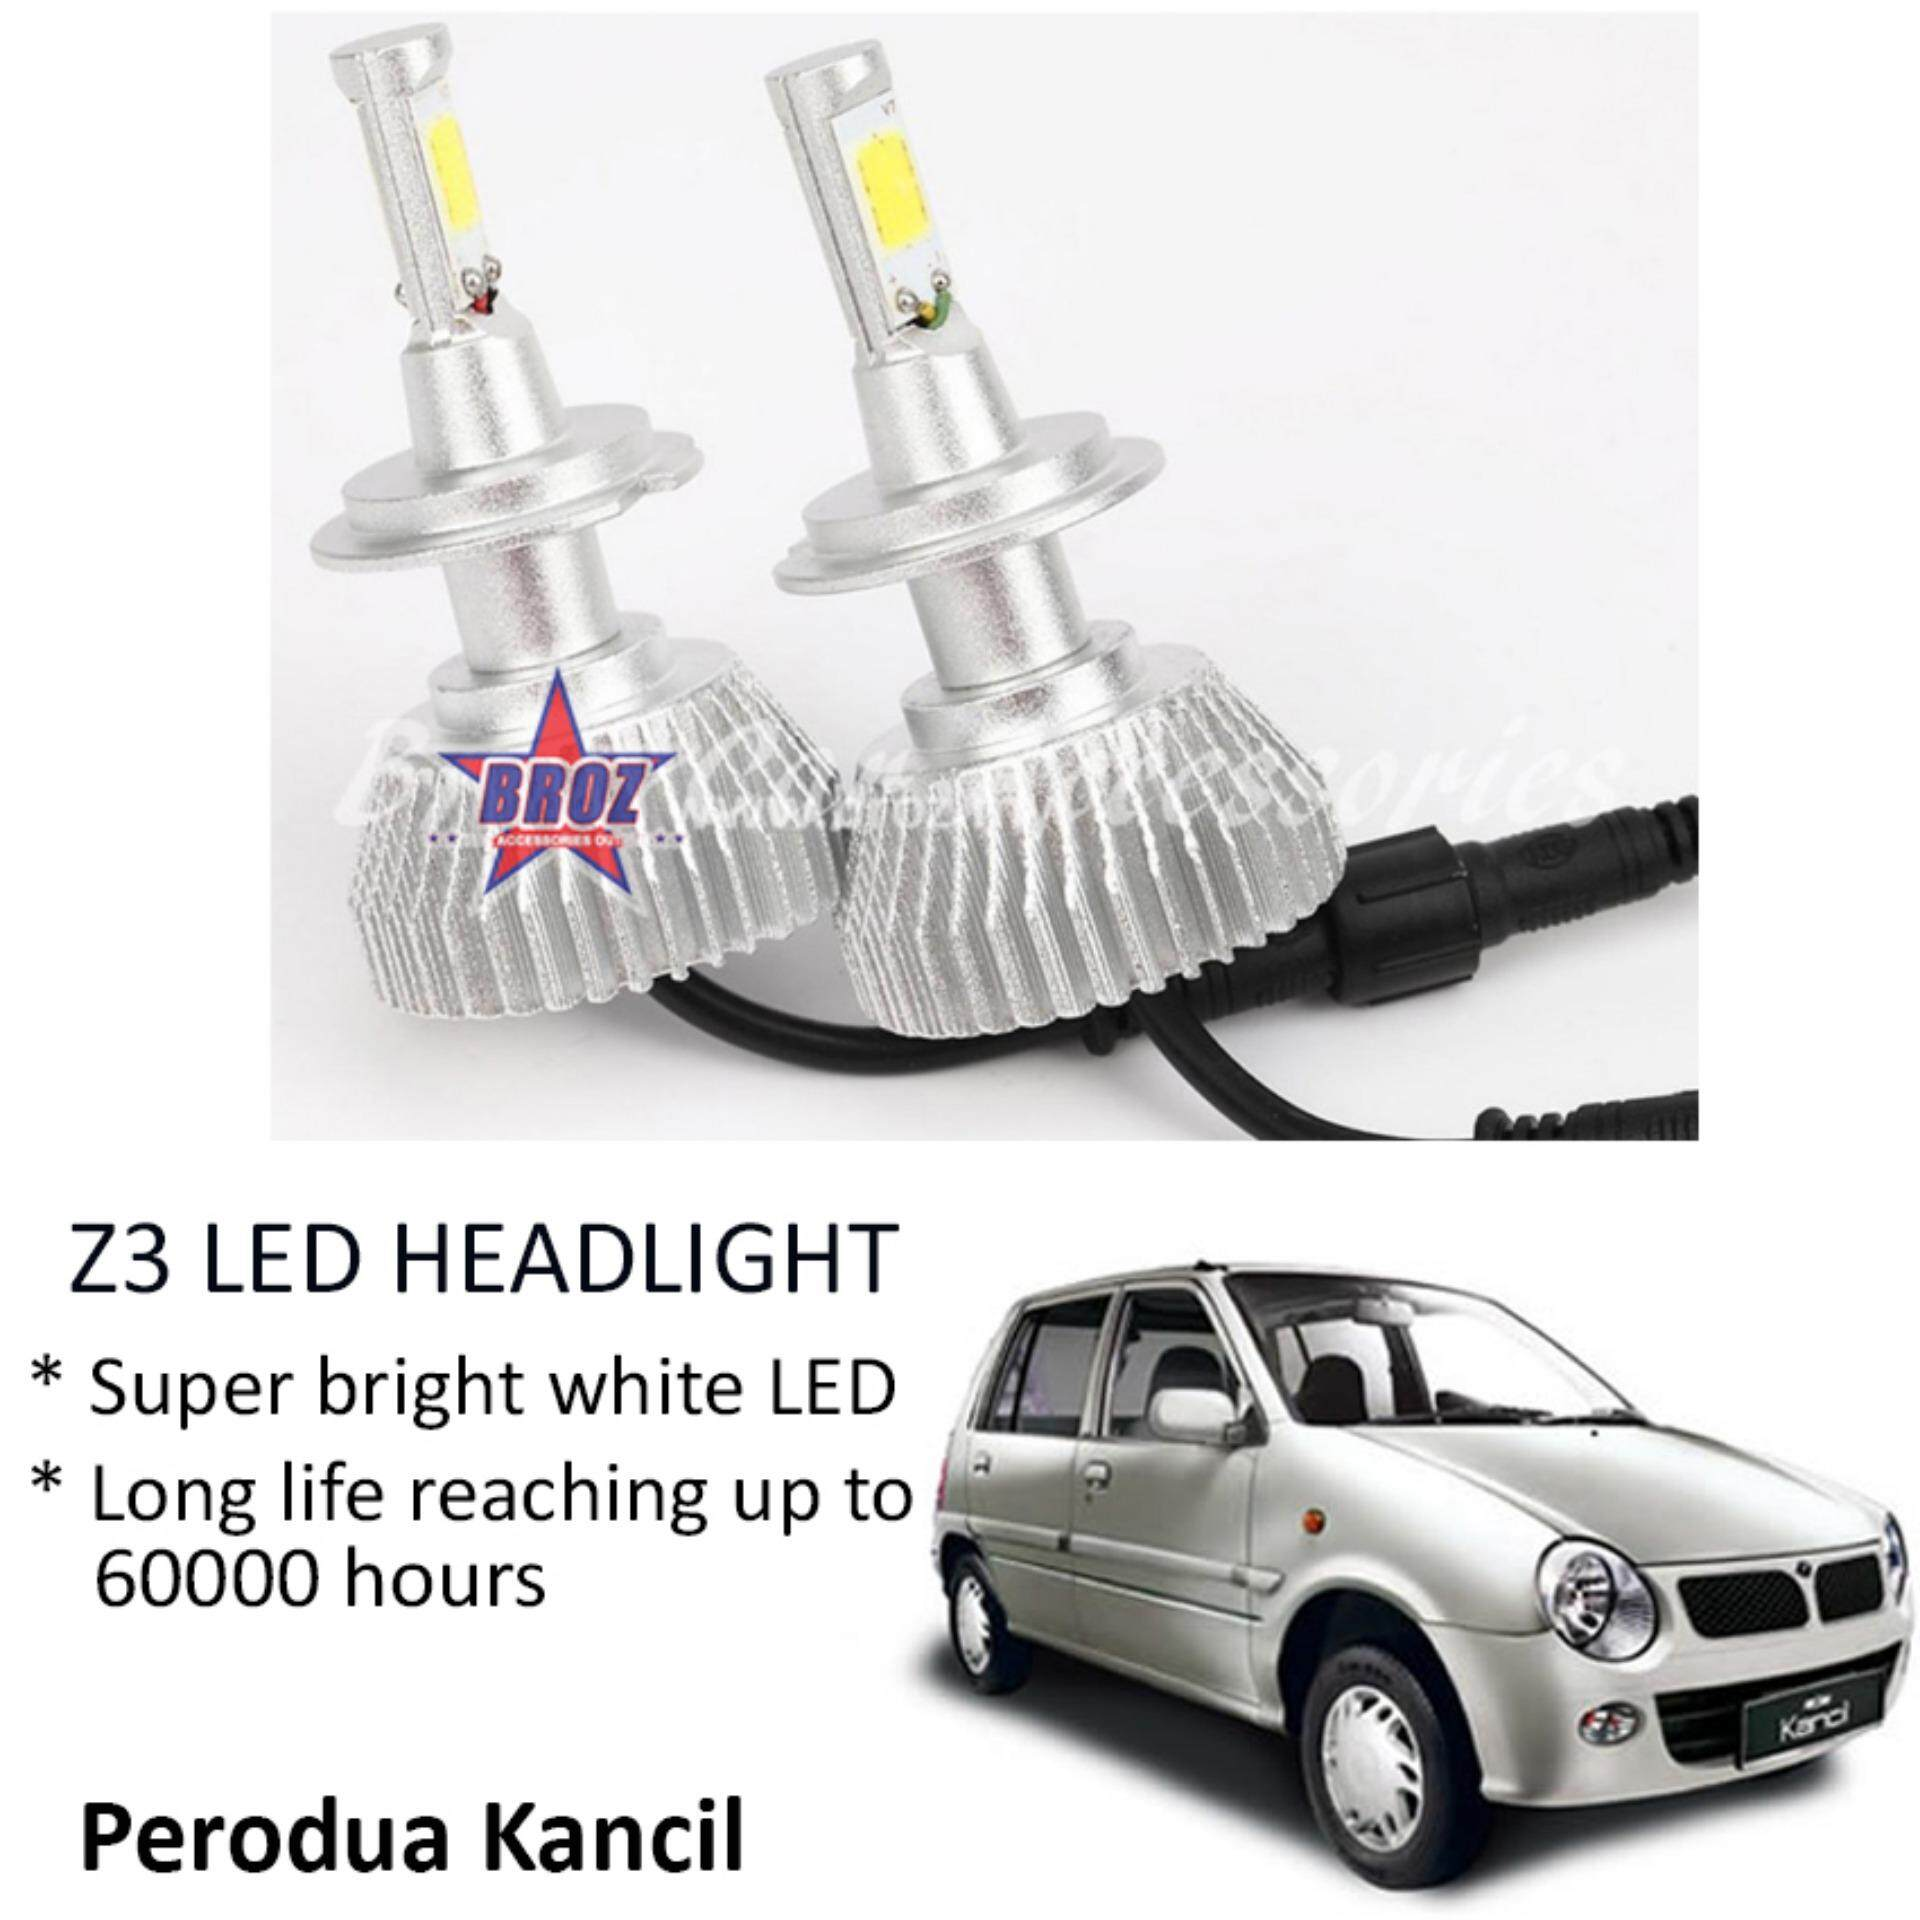 Perodua Kancil (Head Lamp) Z3 LED Light Car Headlight Auto Head light Lamp 6000k White Light